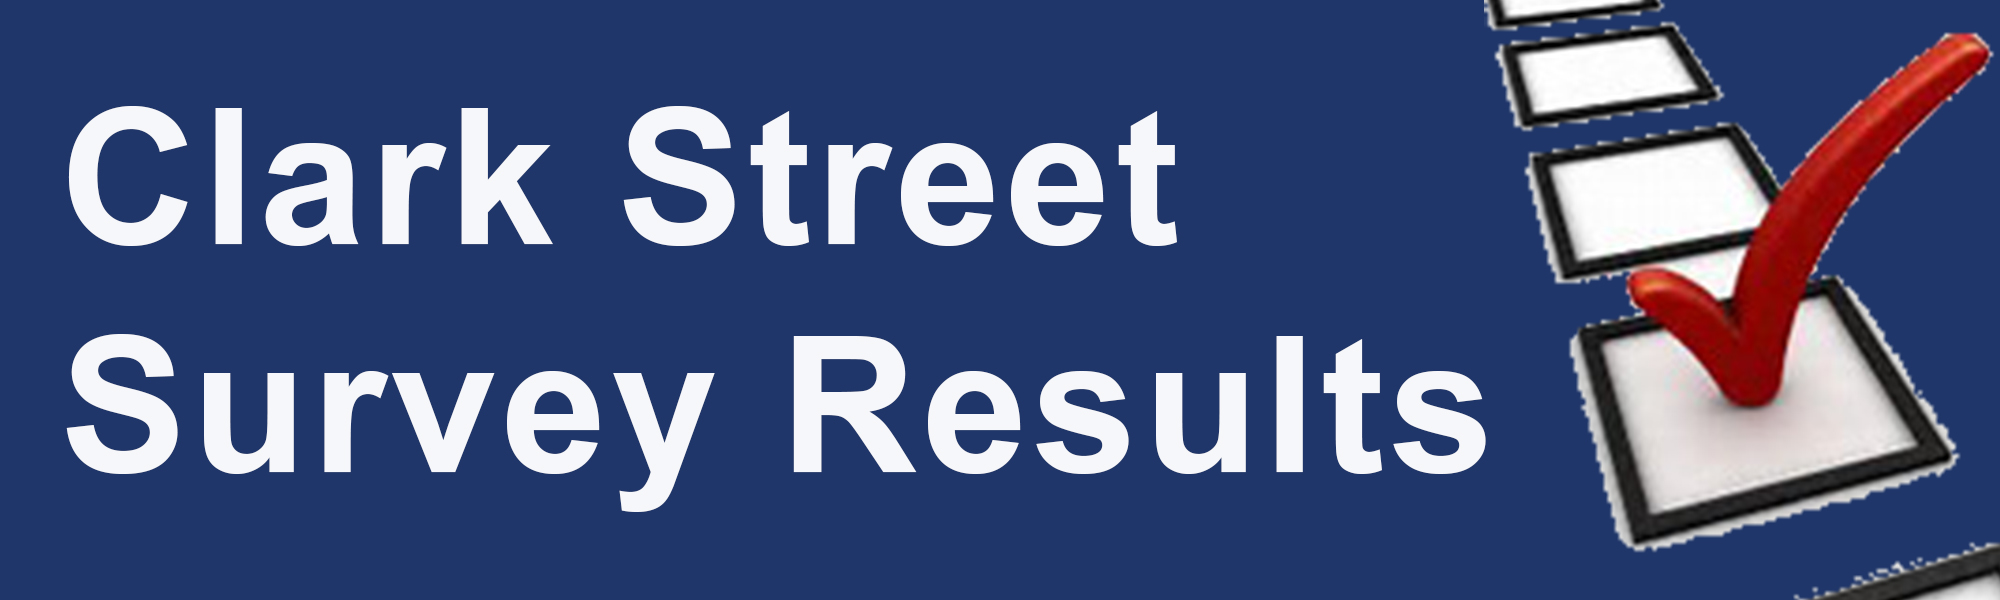 Clark Street Survey Results